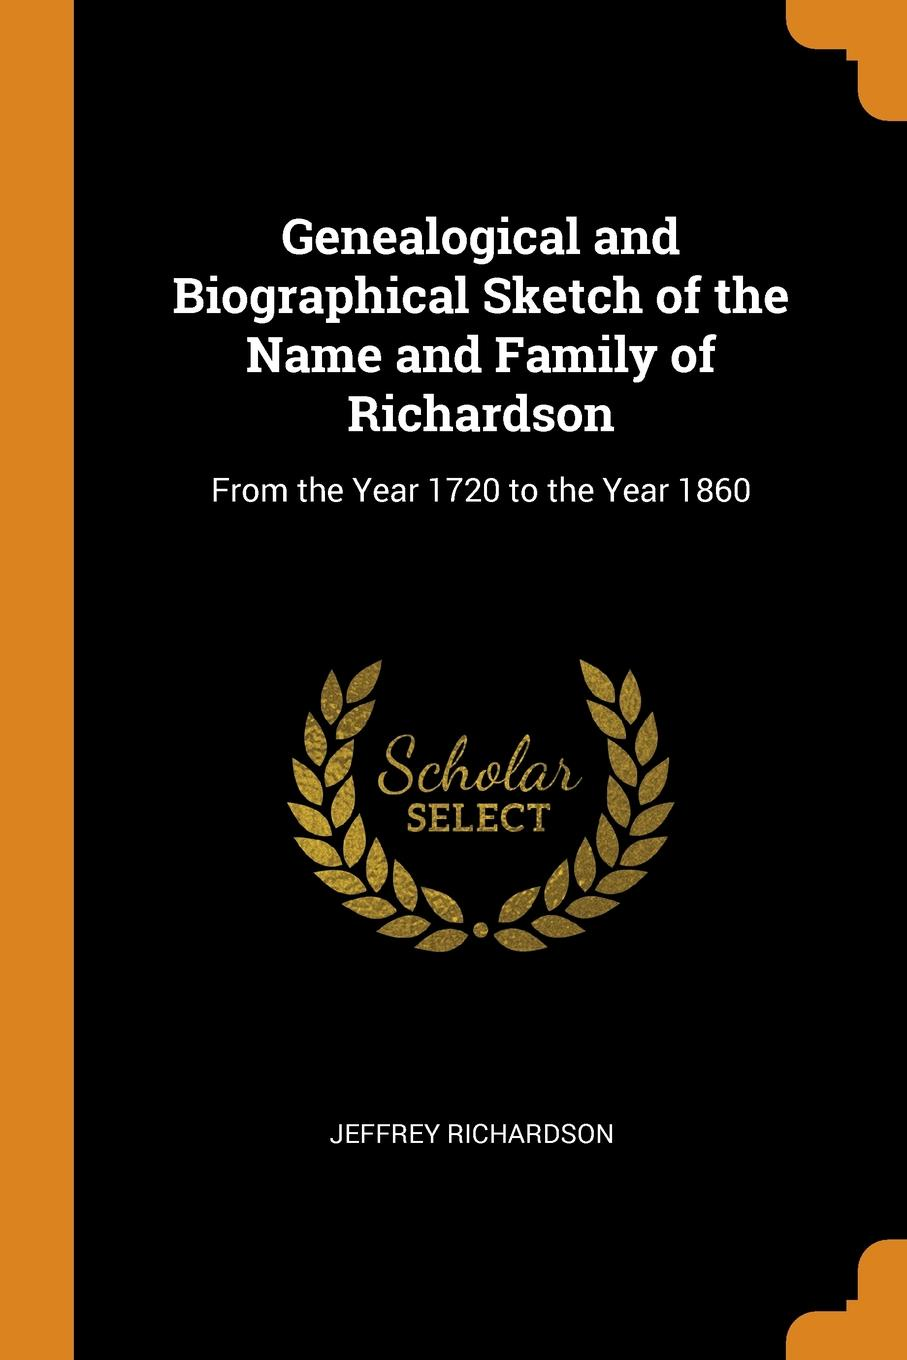 Genealogical and Biographical Sketch of the Name and Family of Richardson. From the Year 1720 to the Year 1860. Jeffrey Richardson